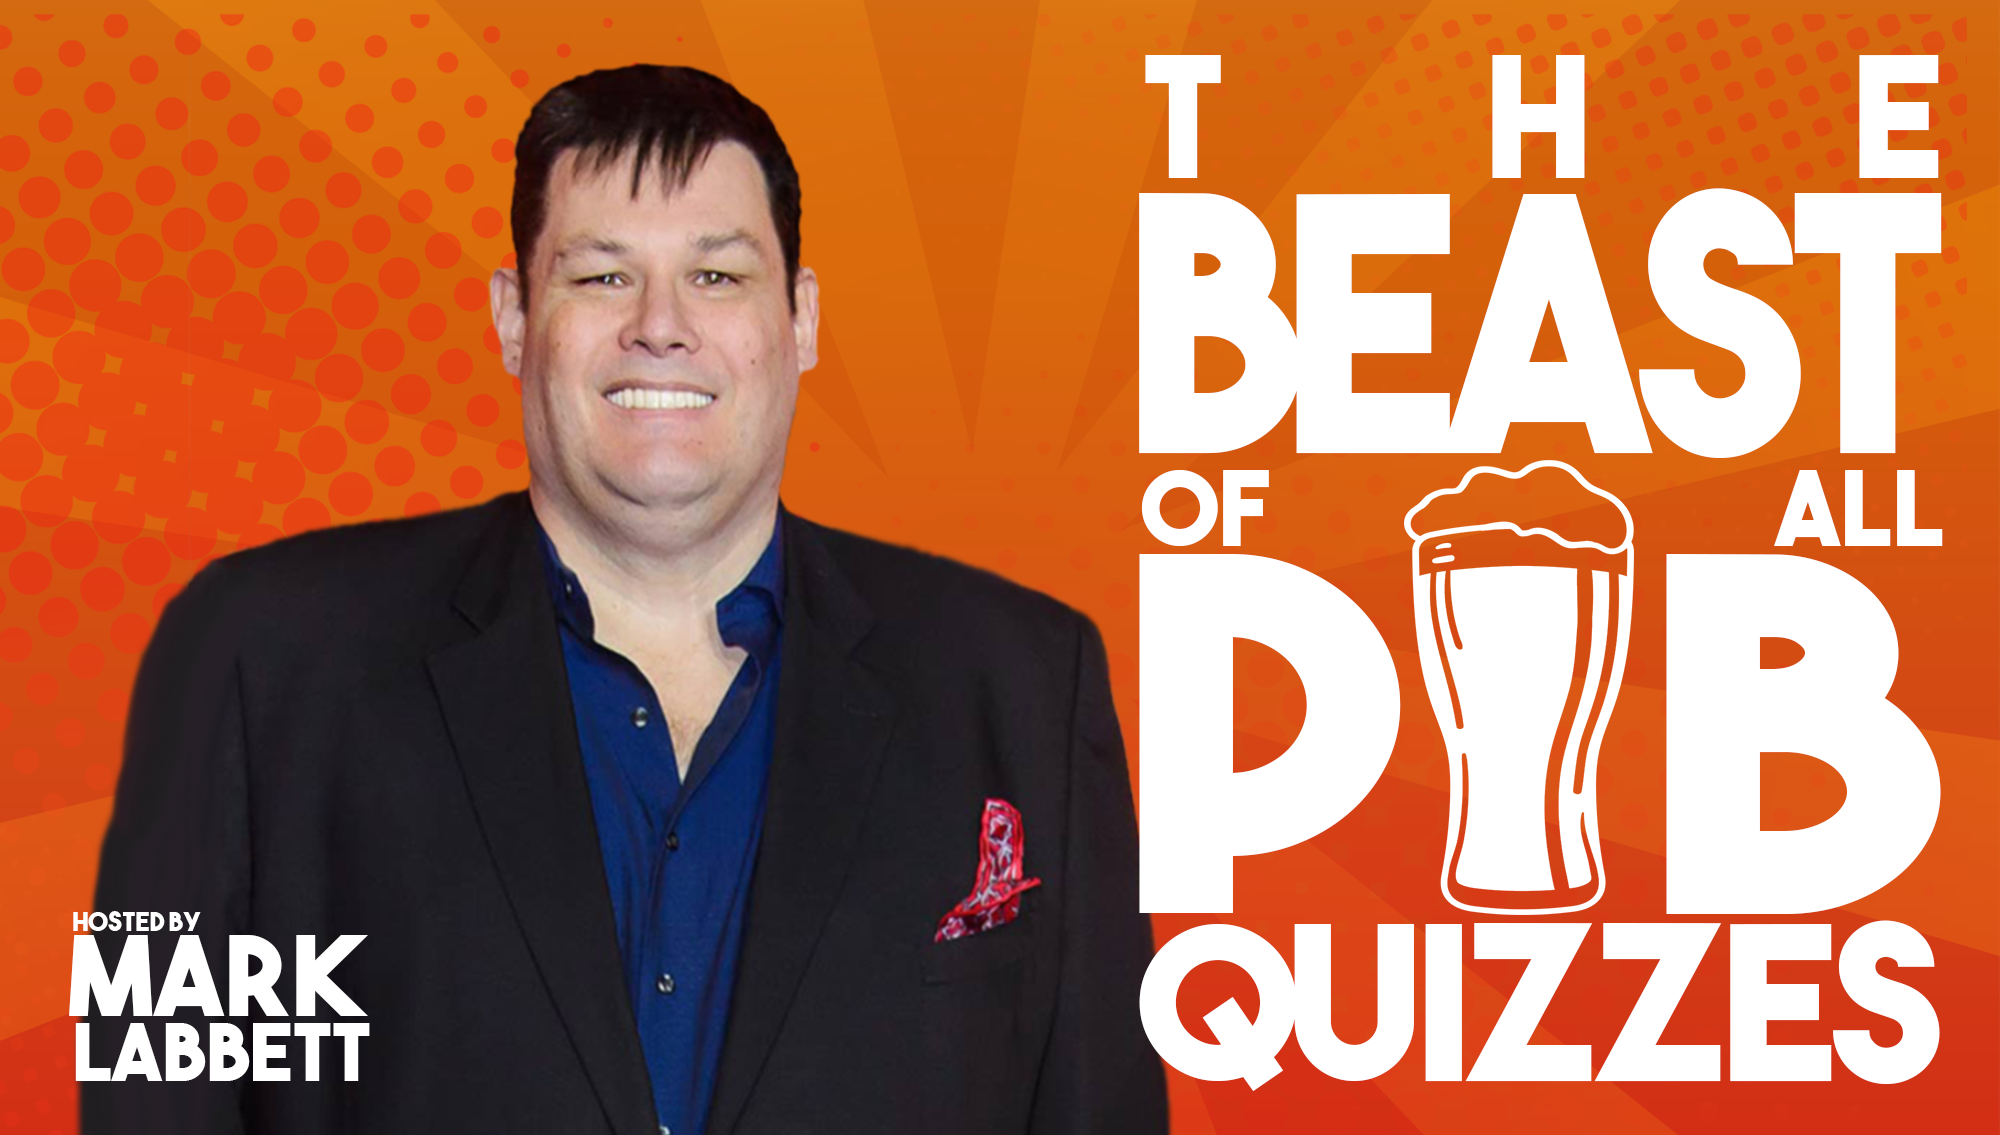 The Beast of all pub quizzes